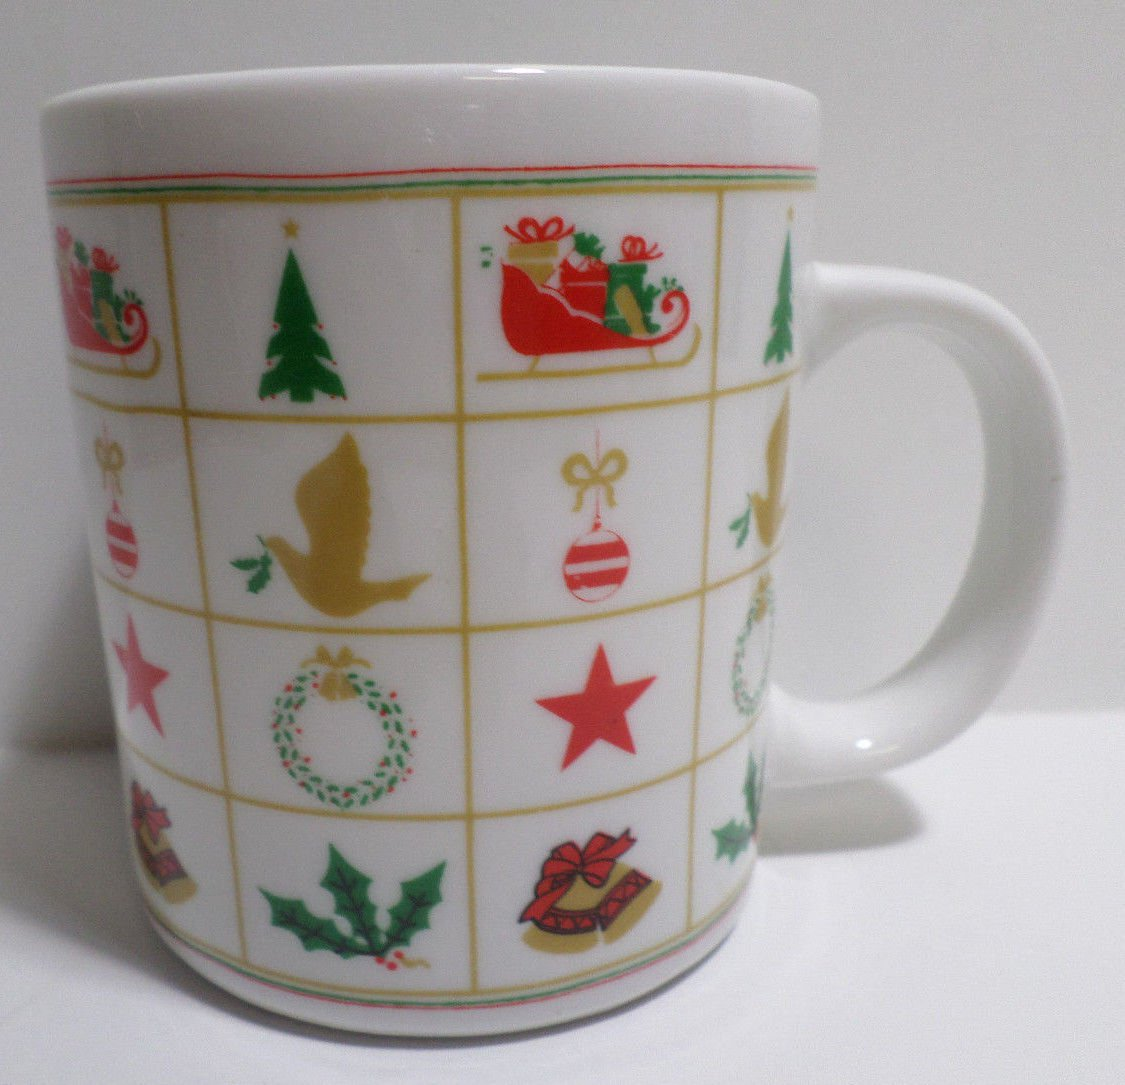 Christmas Collector Coffee Mug Cup Santa Claus Sleigh by Finest Ceramics